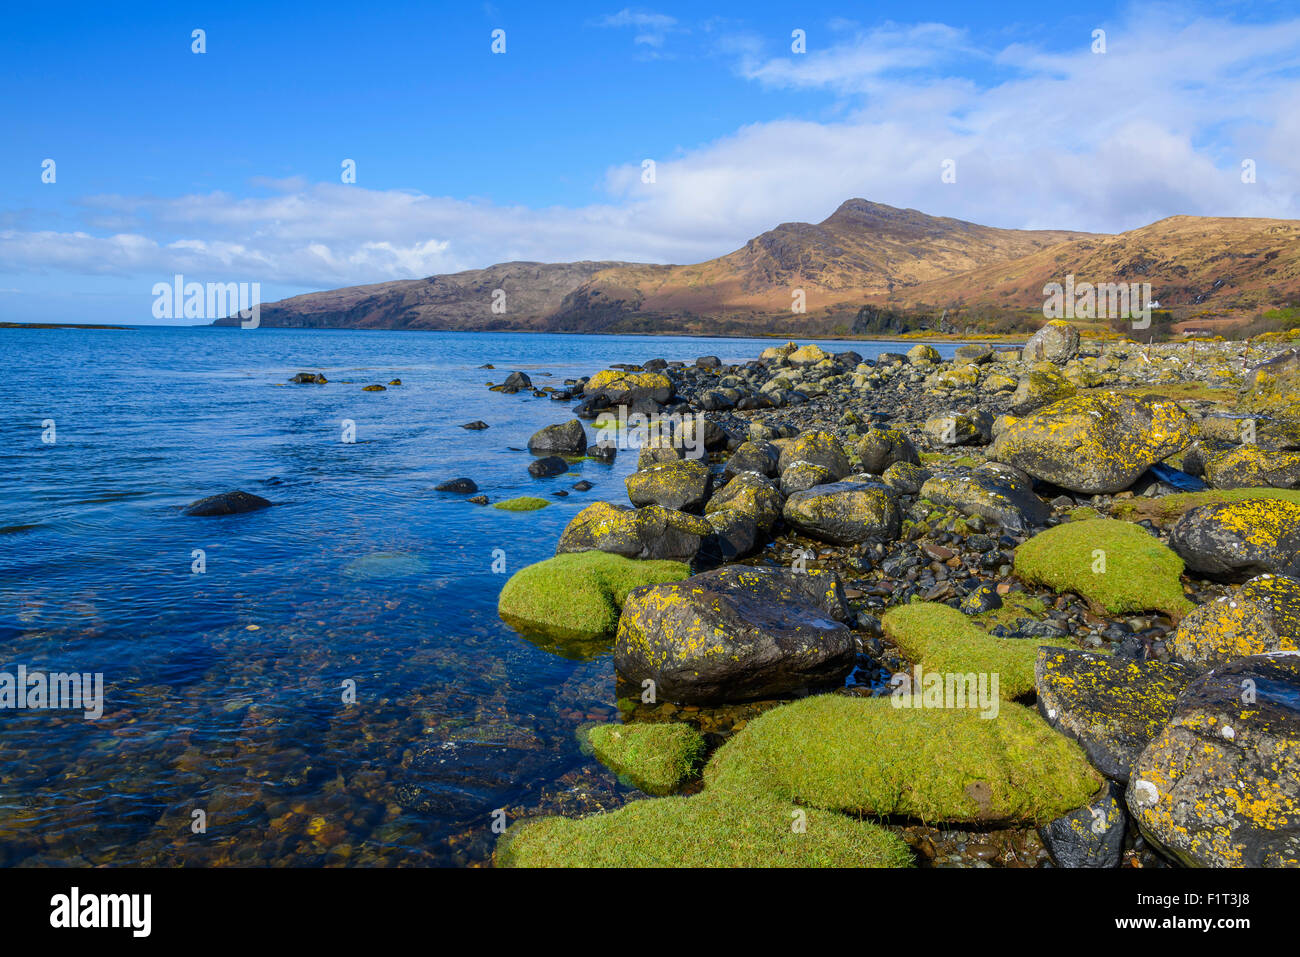 Loch Buie, Isle of Mull, Inner Hebrides, Argyll and Bute, Scotland, United Kingdom, Europe - Stock Image